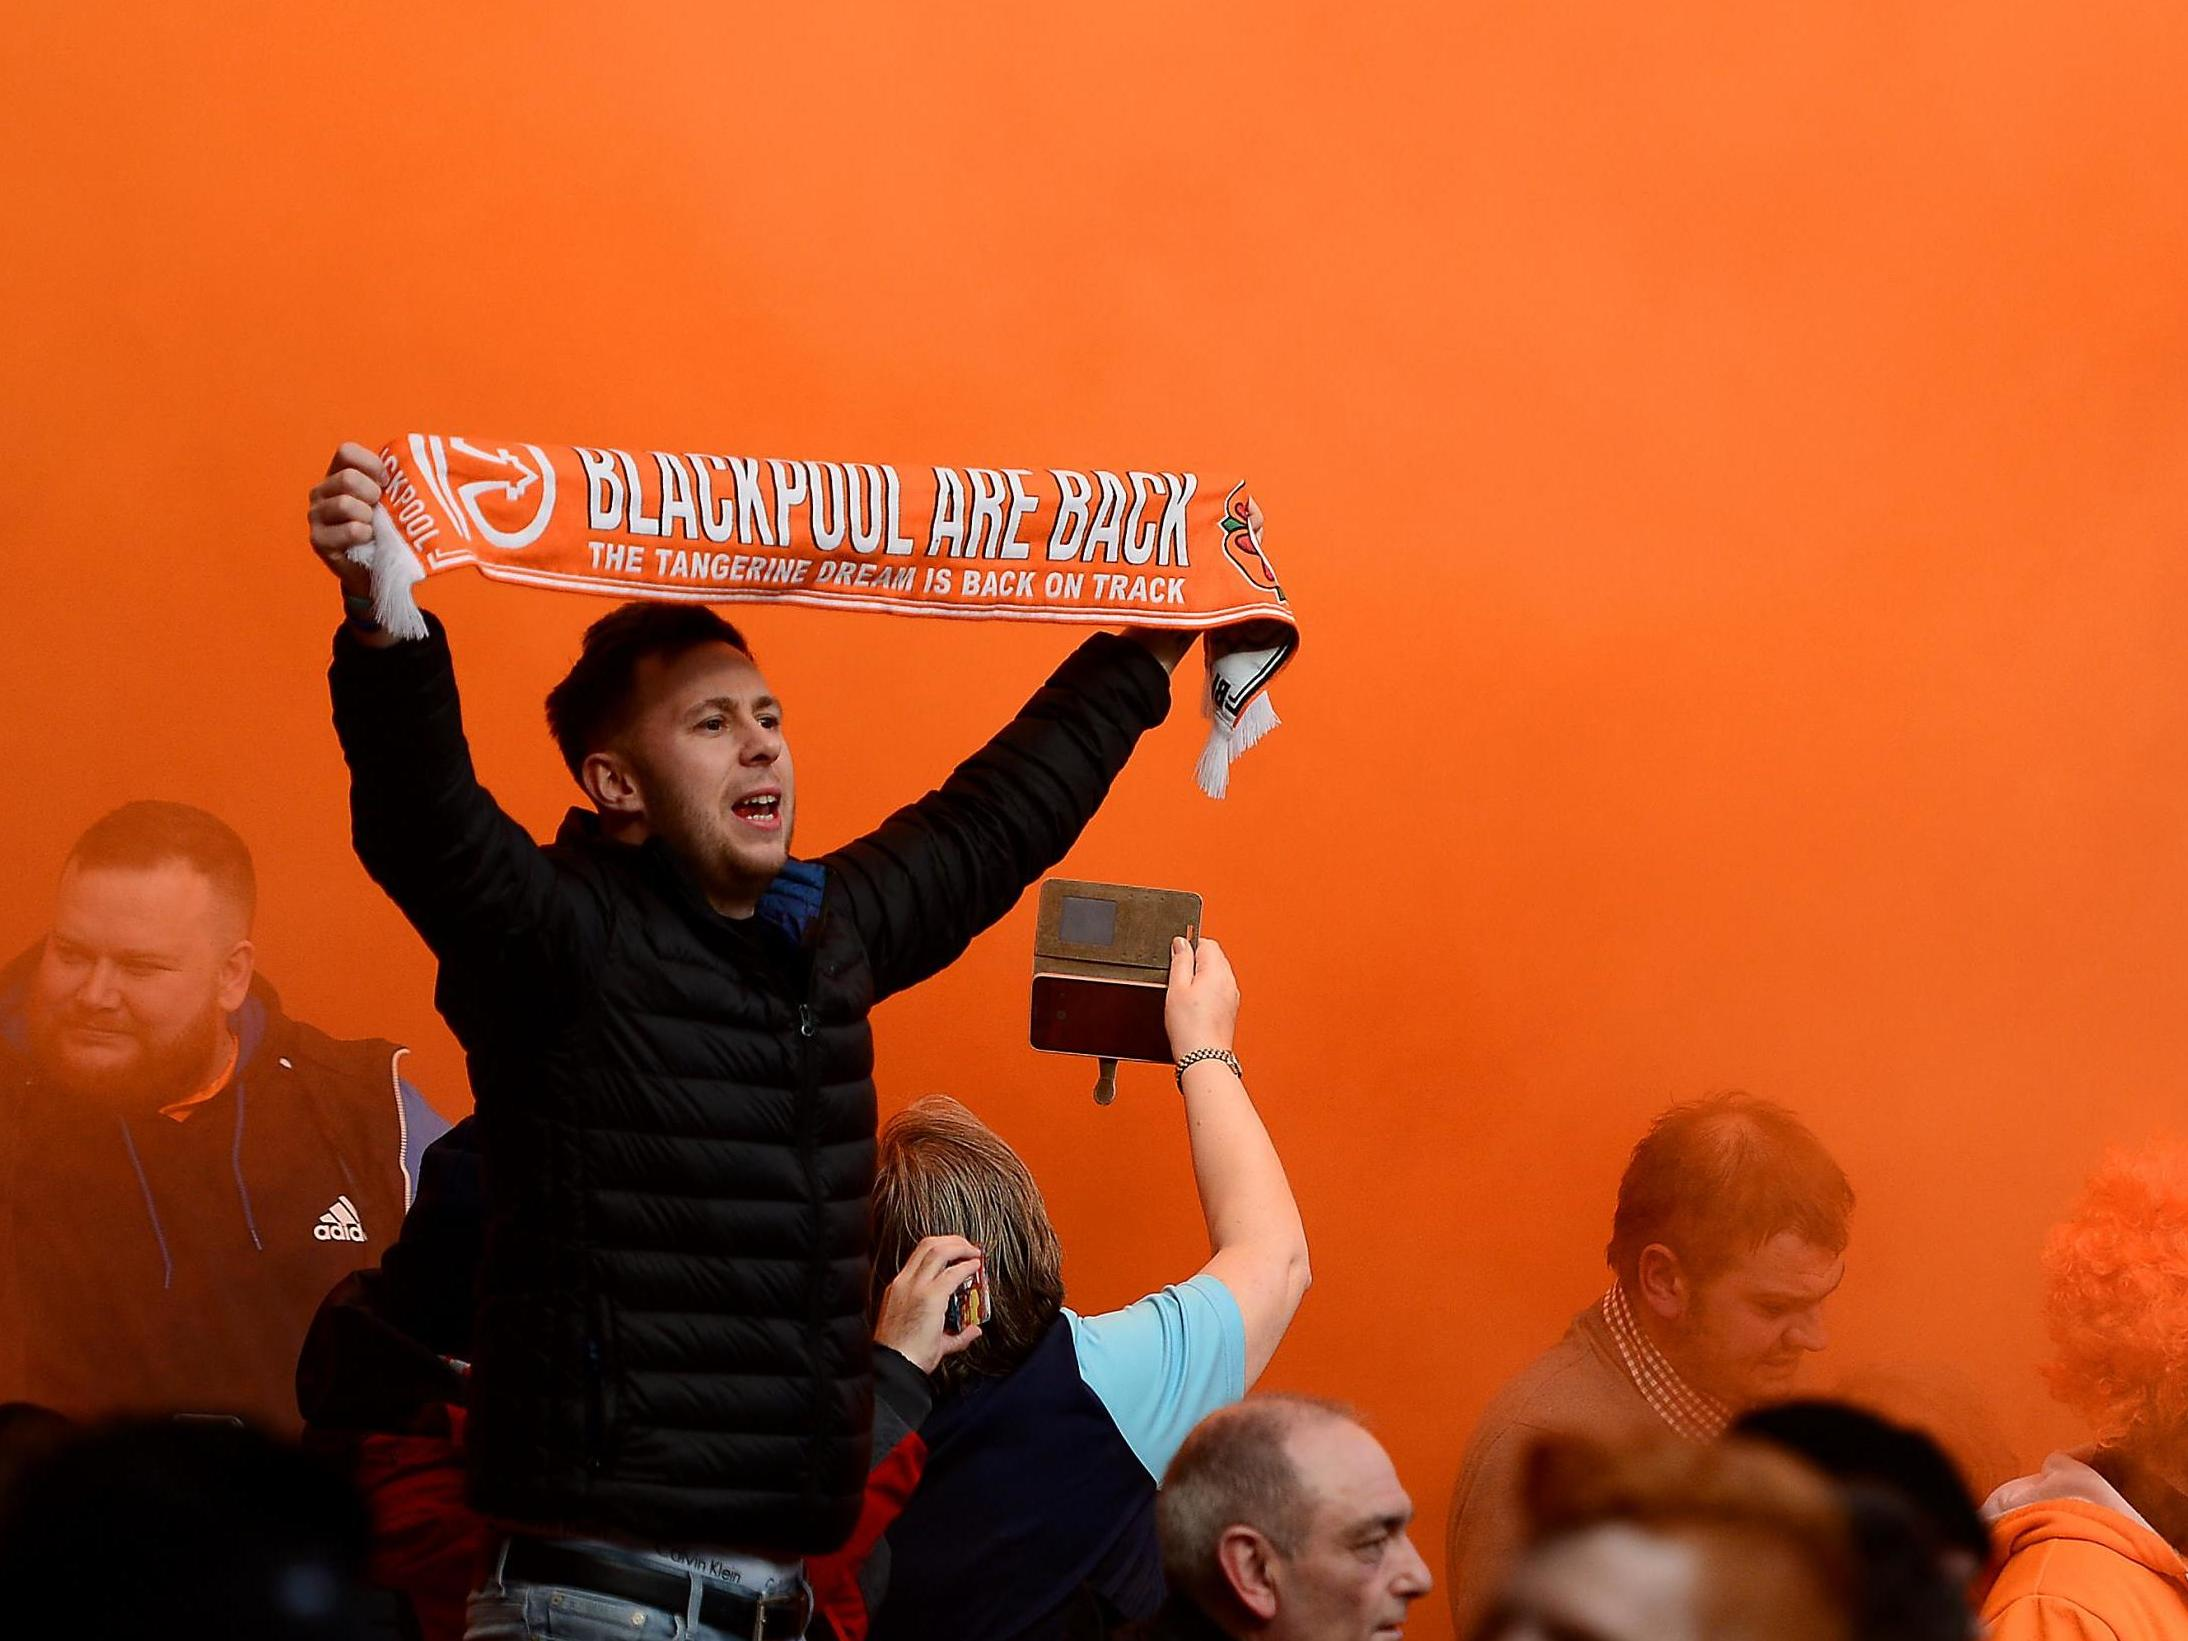 Blackpool rise from ashes in new hope but redemption comes